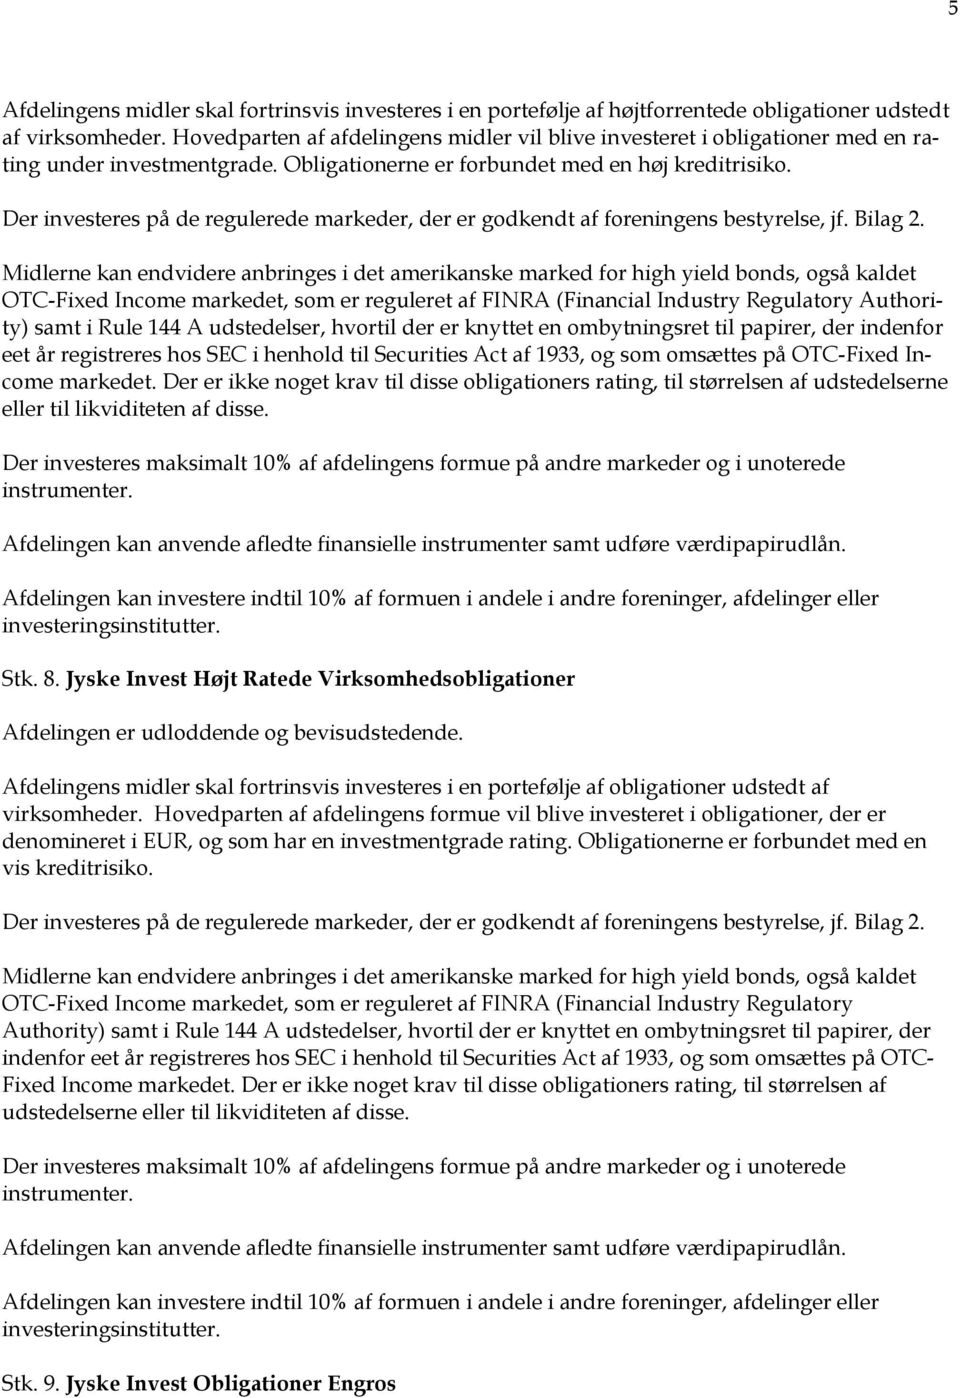 Midlerne kan endvidere anbringes i det amerikanske marked for high yield bonds, også kaldet OTC-Fixed Income markedet, som er reguleret af FINRA (Financial Industry Regulatory Authority) samt i Rule